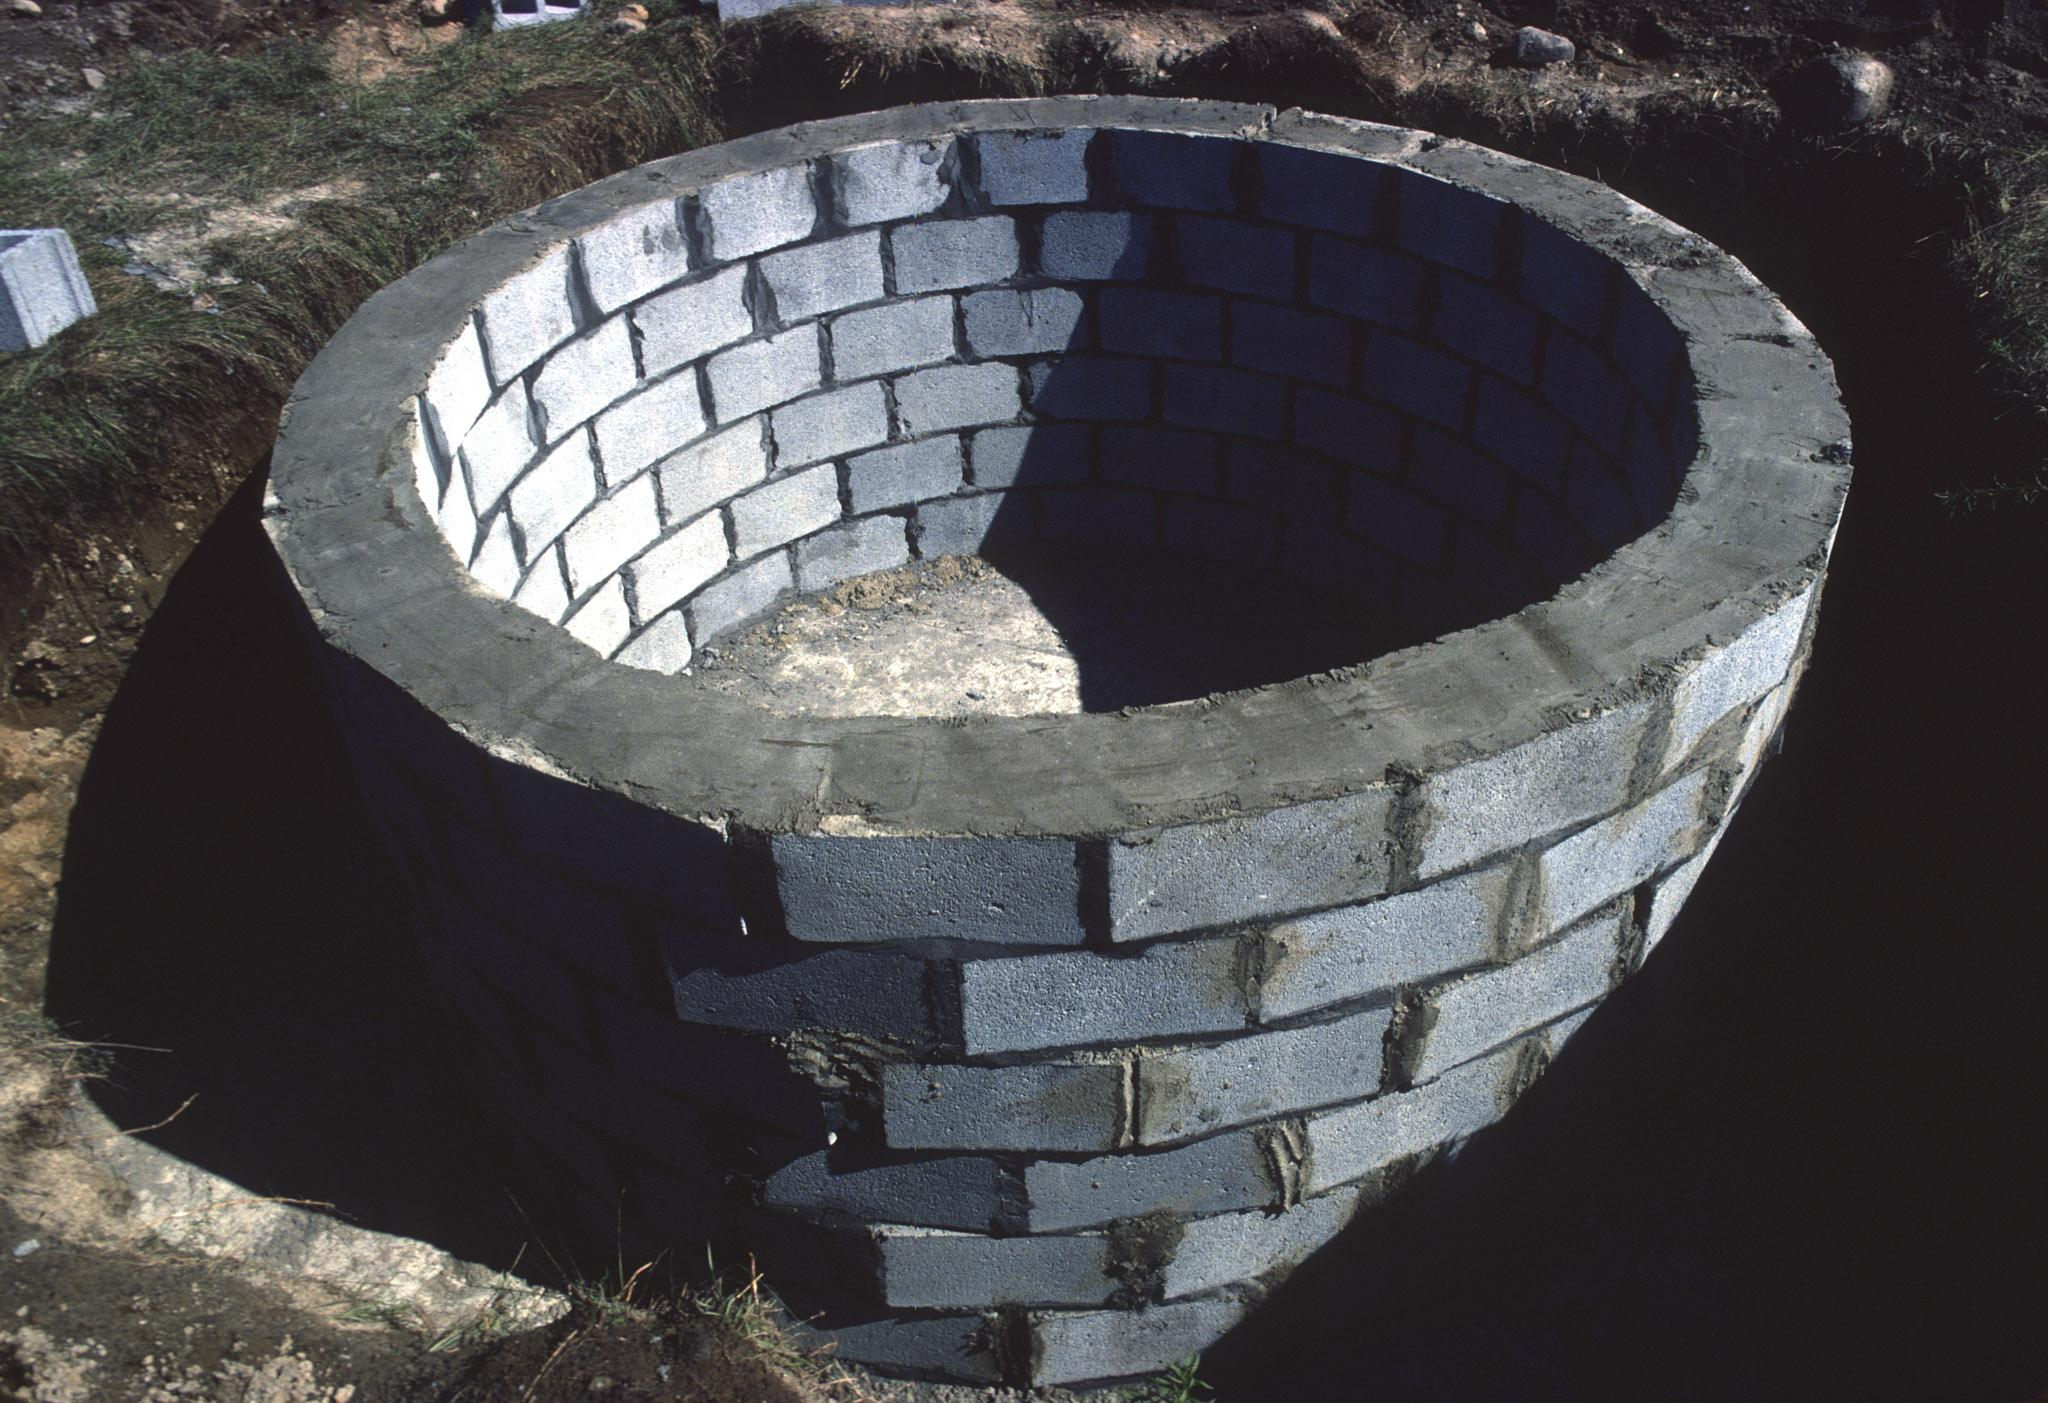 a ring of cinder blocks with mortar